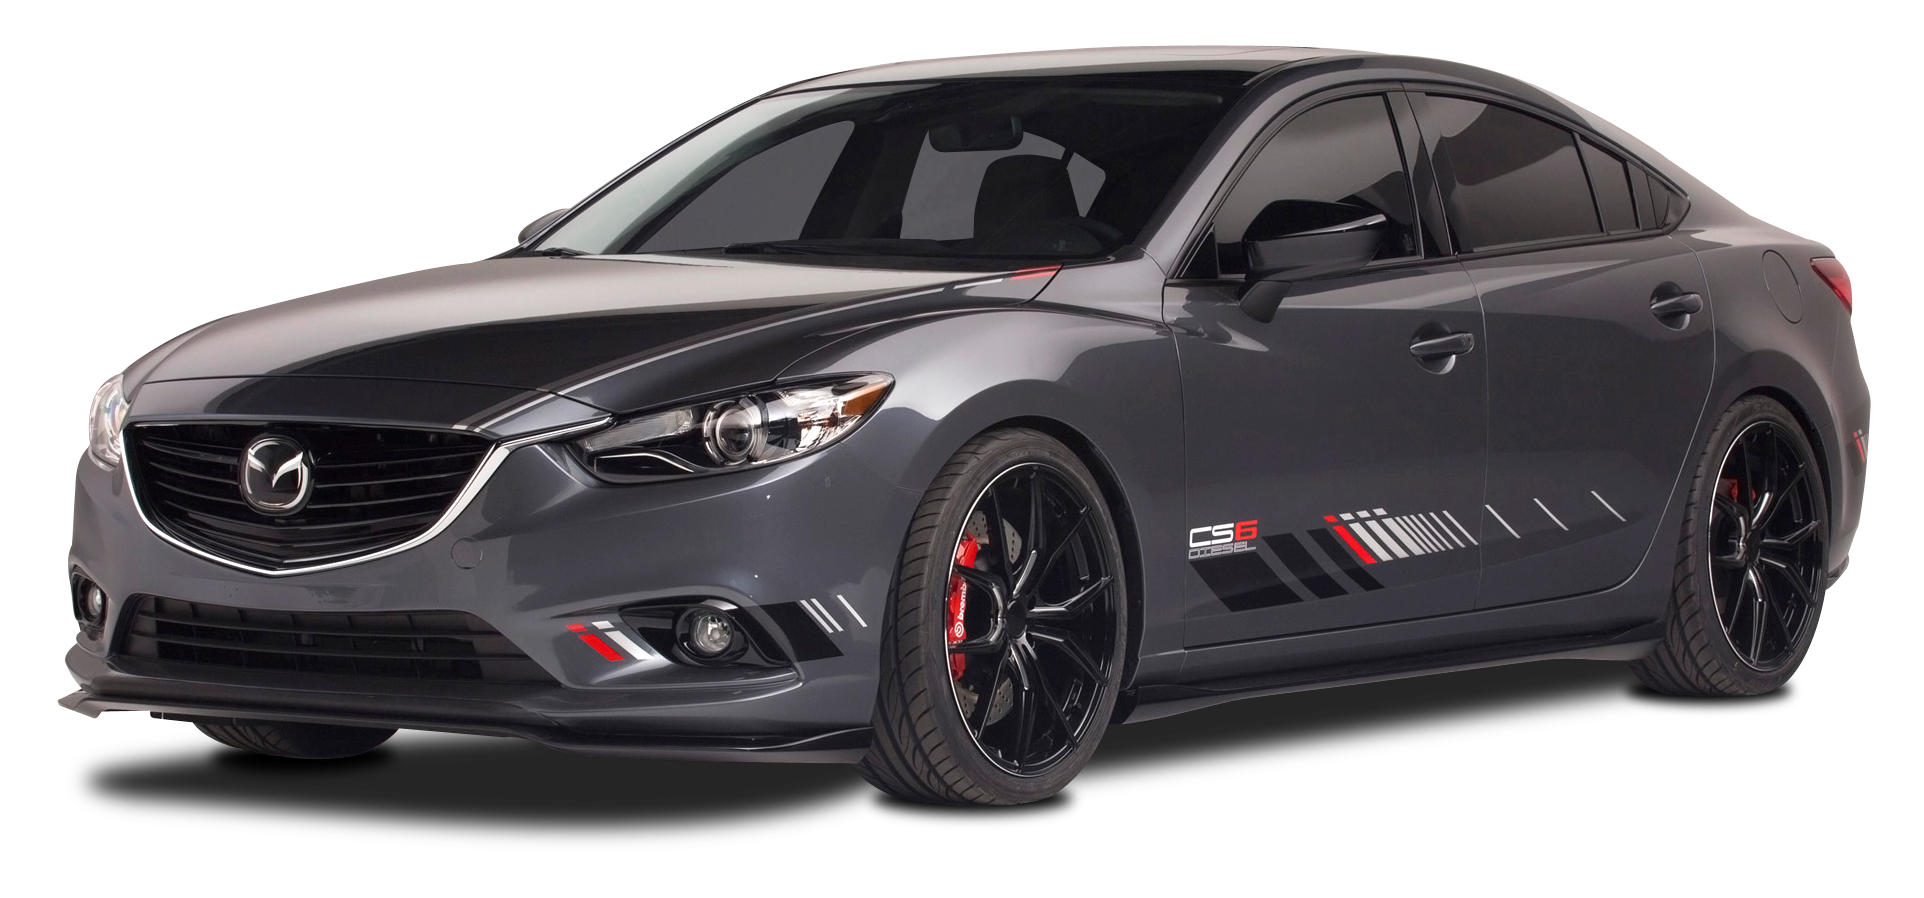 Mazda Club Sport 6 Car PNG Image